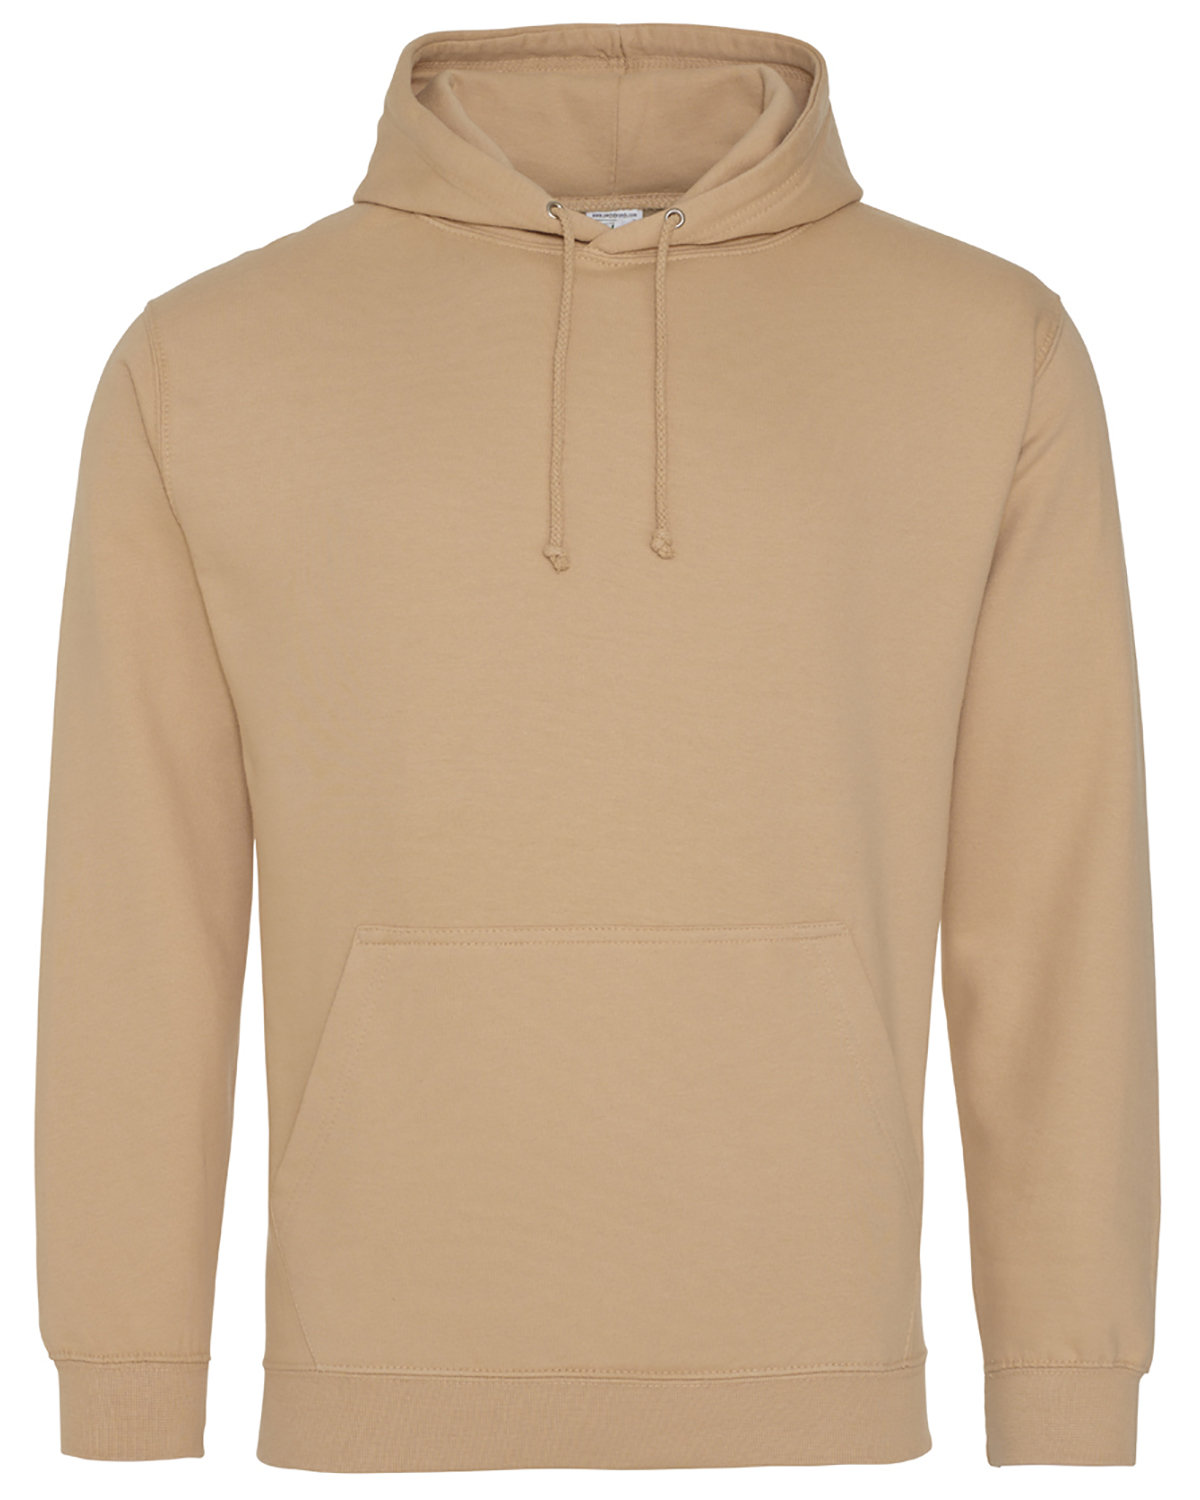 Just Hoods By AWDis Men's 80/20 Midweight College Hooded Sweatshirt NUDE